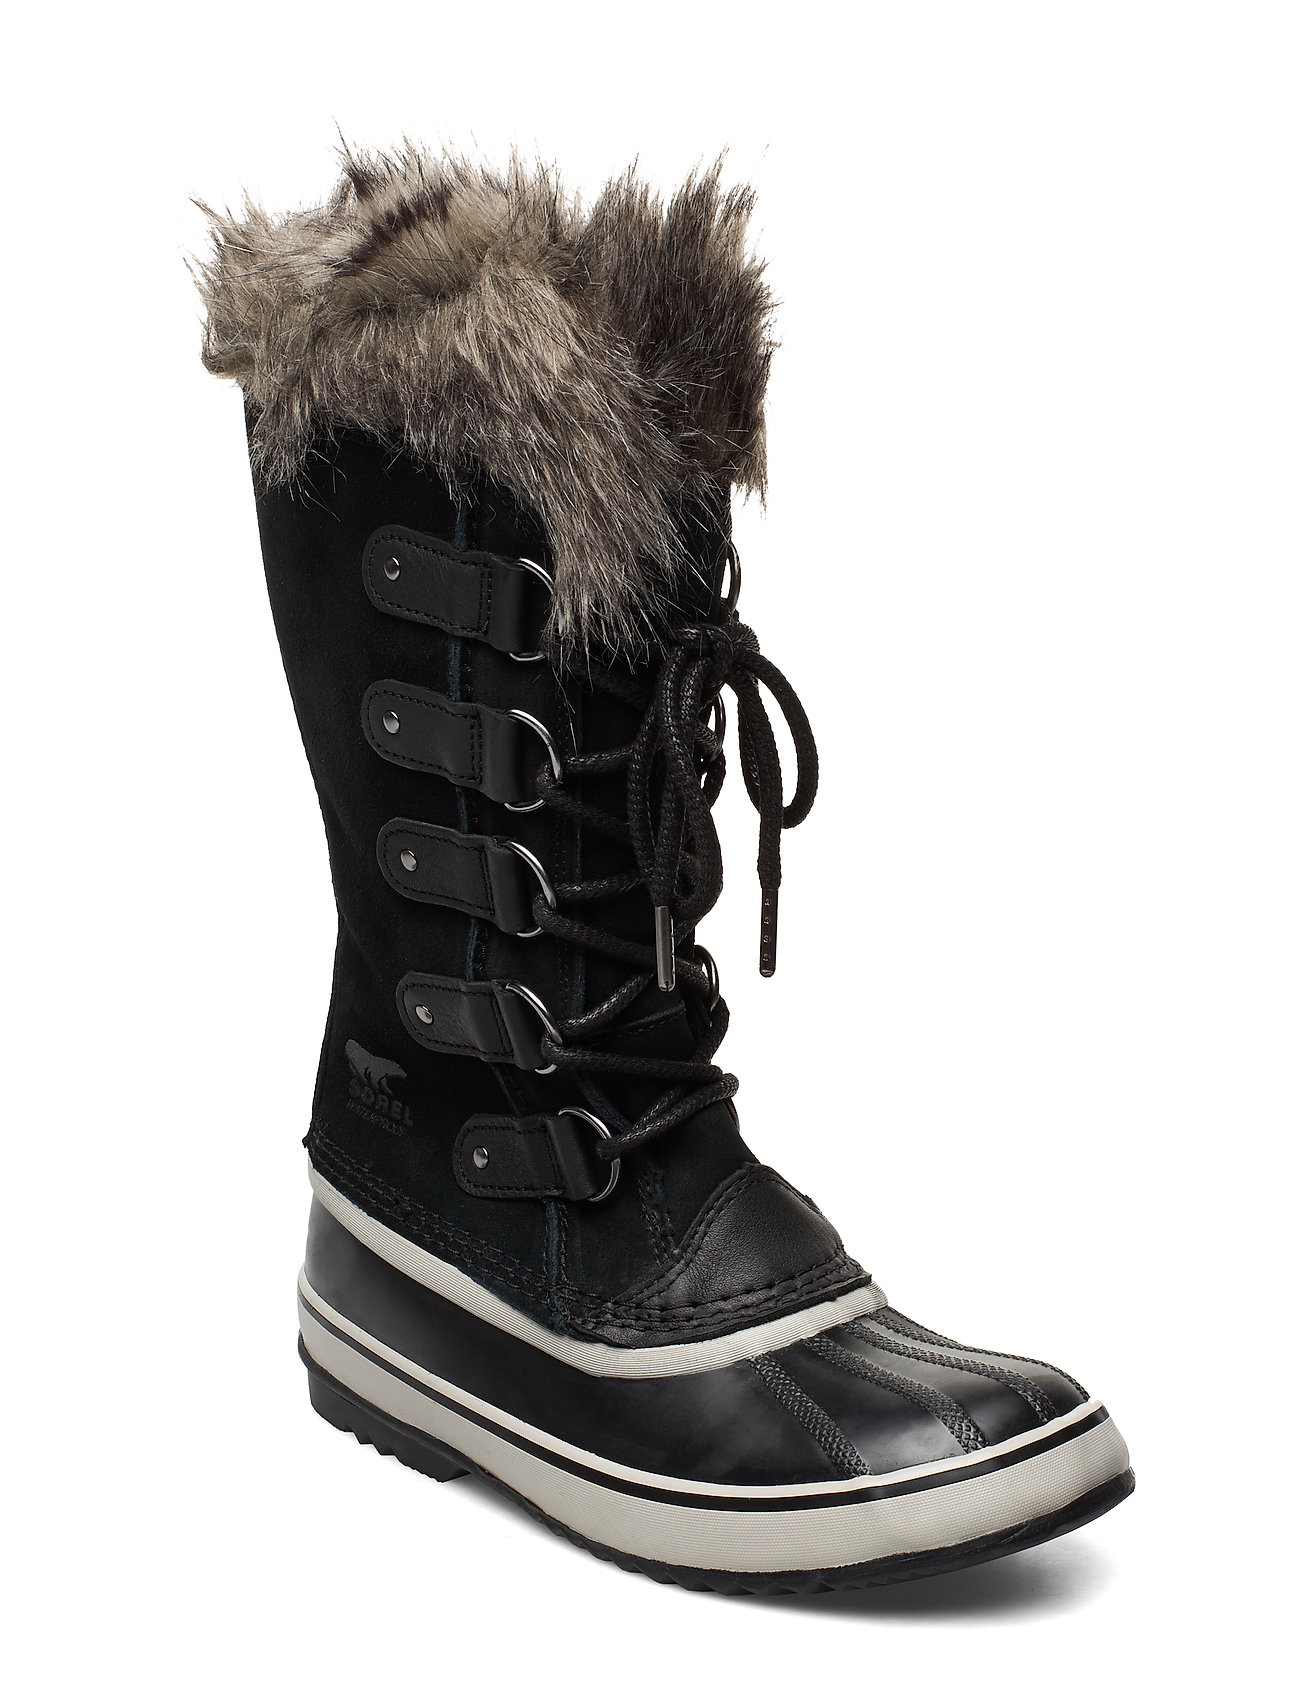 Sorel JOAN OF ARCTIC - BLACK, QUARRY